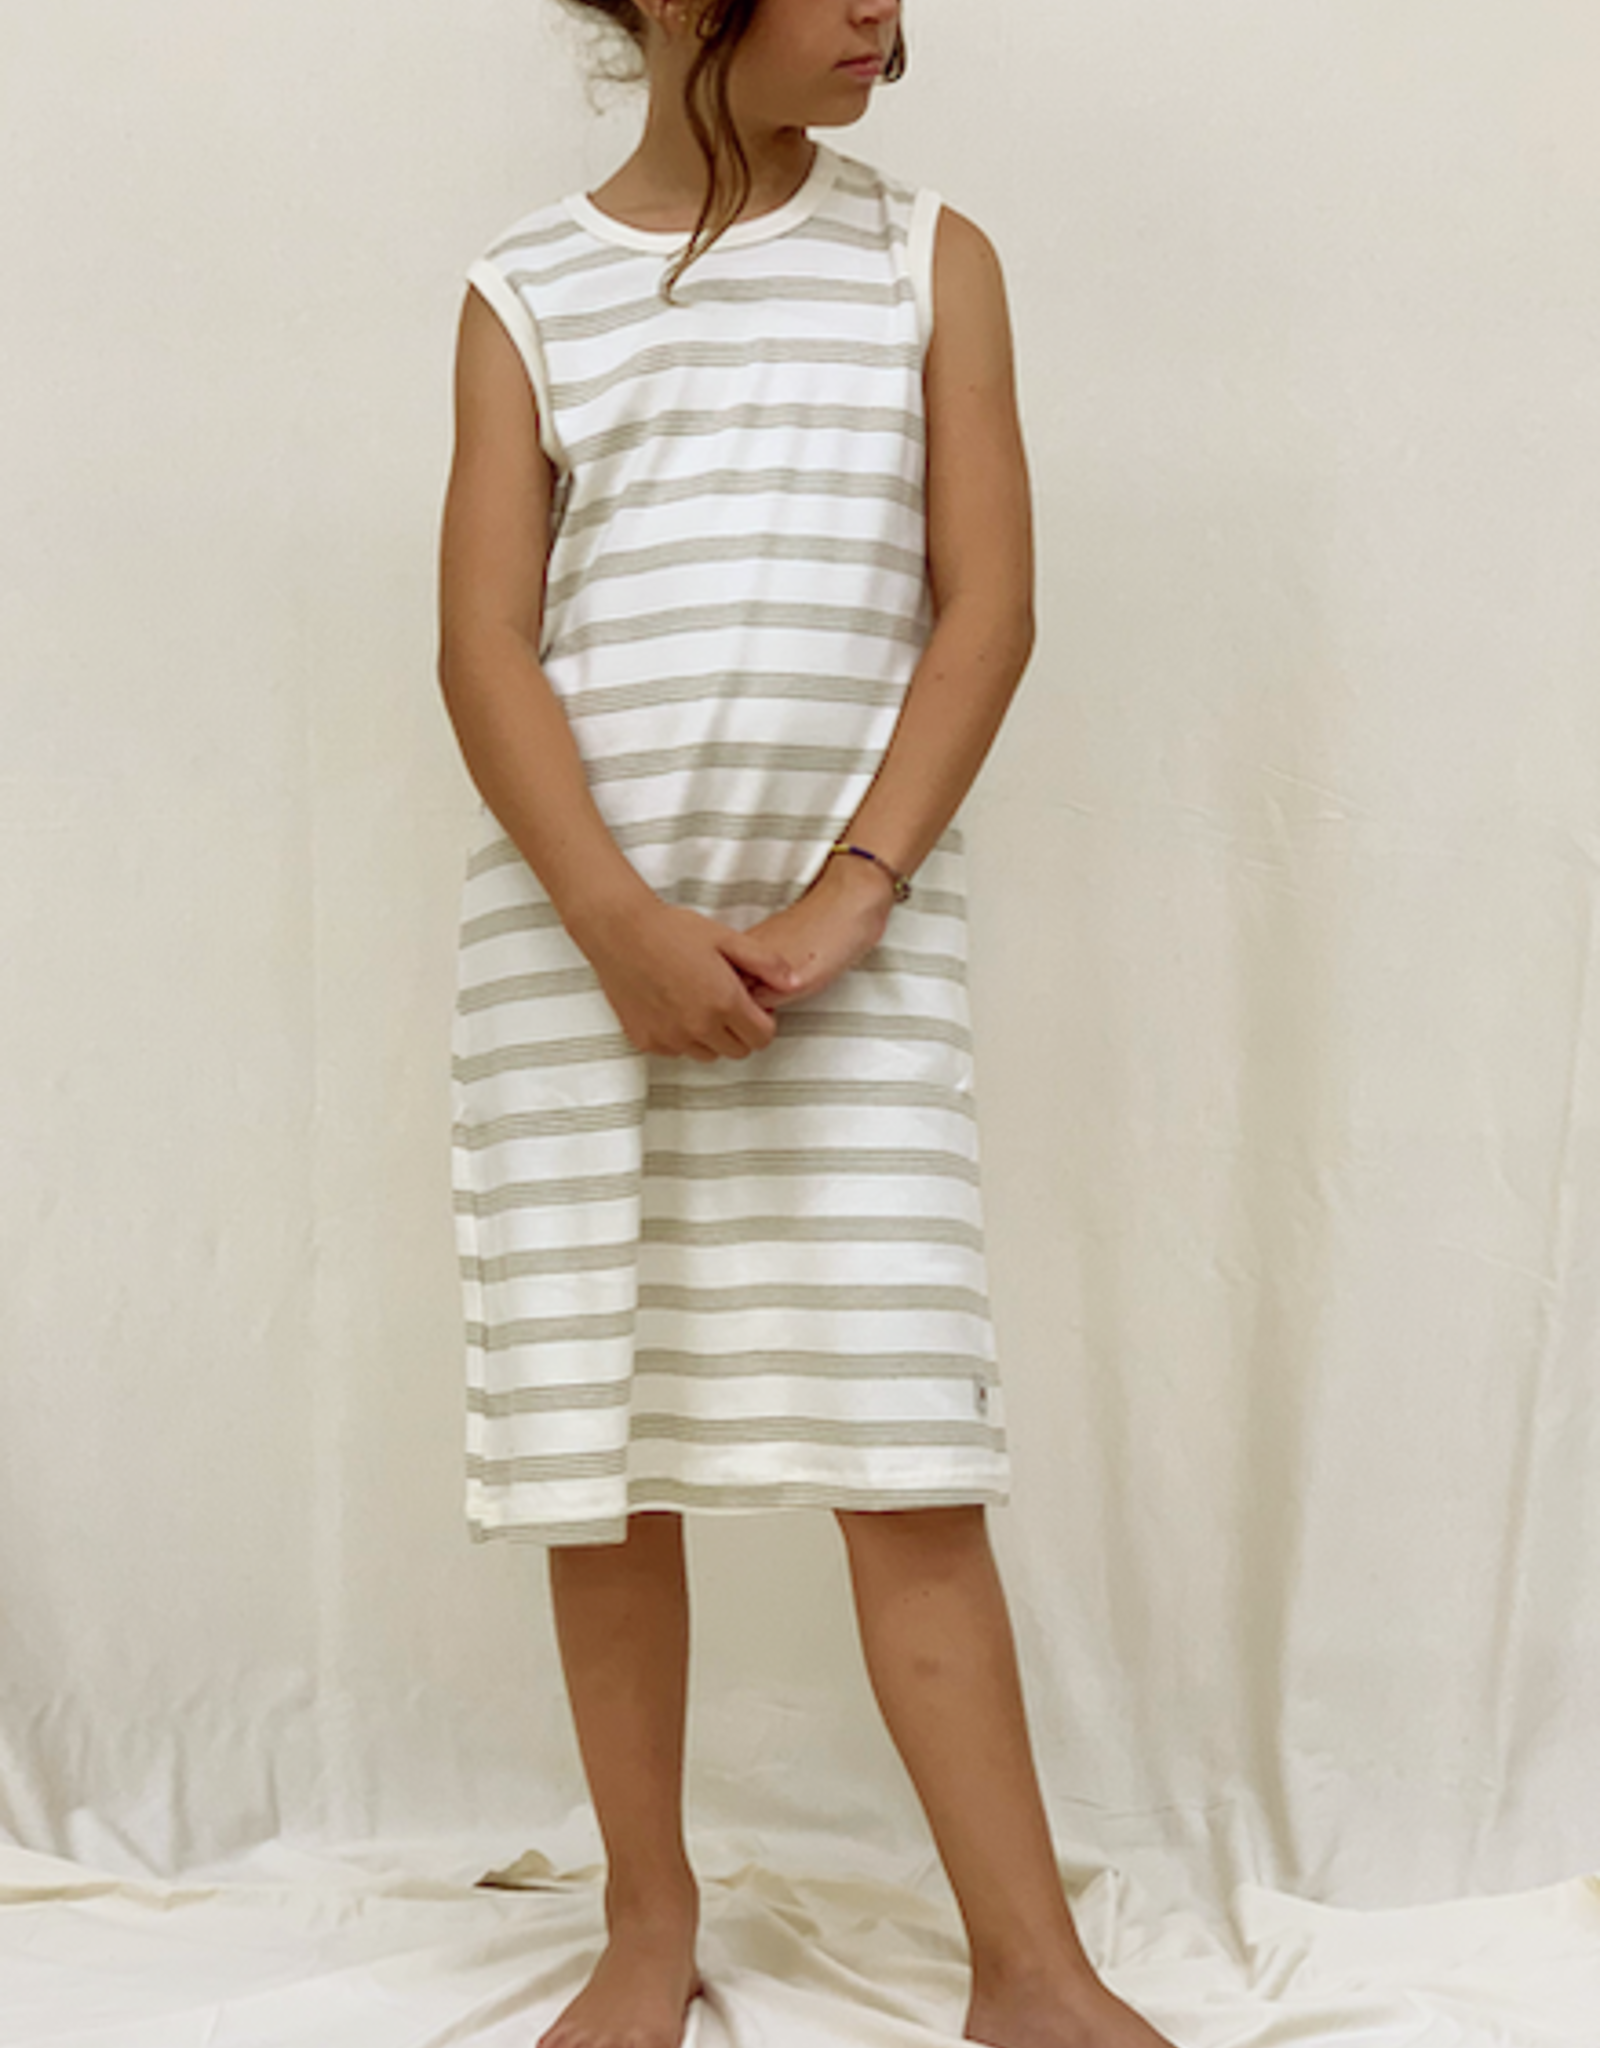 Junior sleeveless dress with stripes fabric. sizes 8, 10, 12 years.